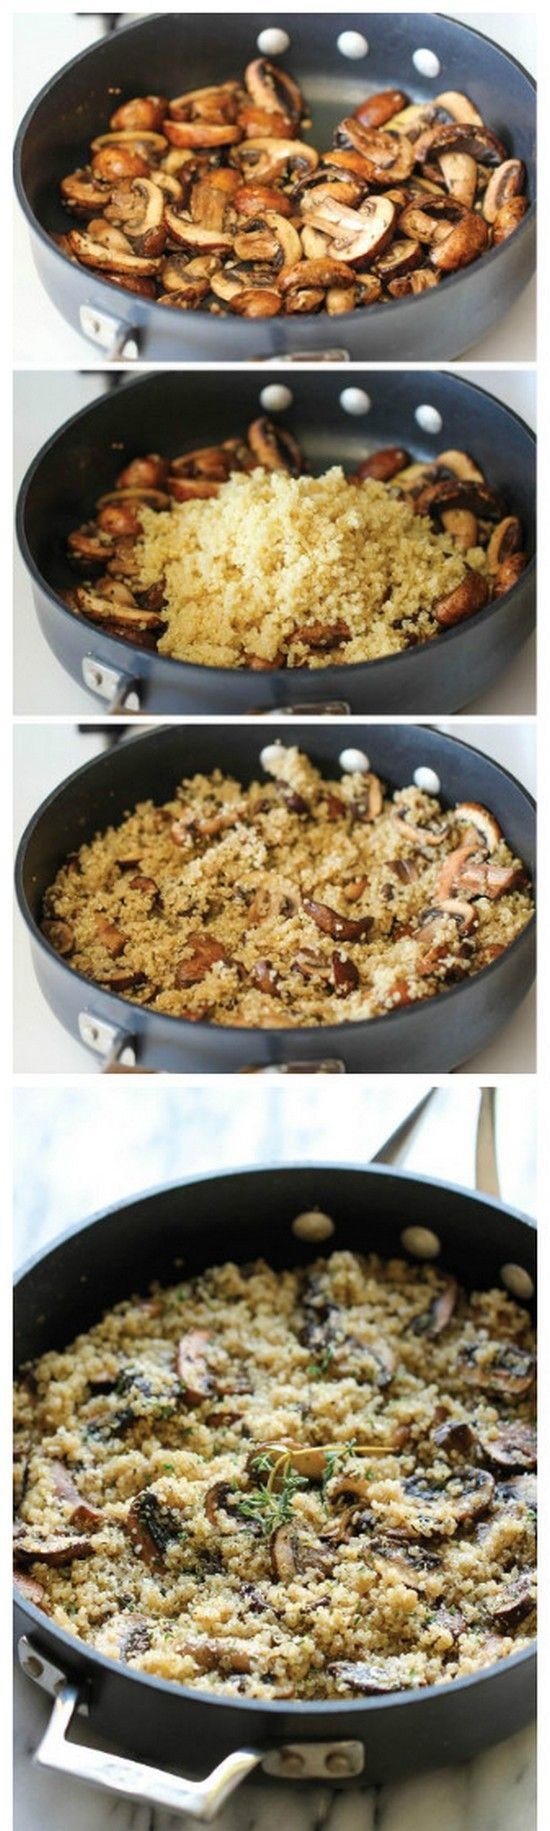 Garlic Mushroom Quinoa -  Garlic Mushroom Quinoa | An easy, healthy side dish that you'll want to